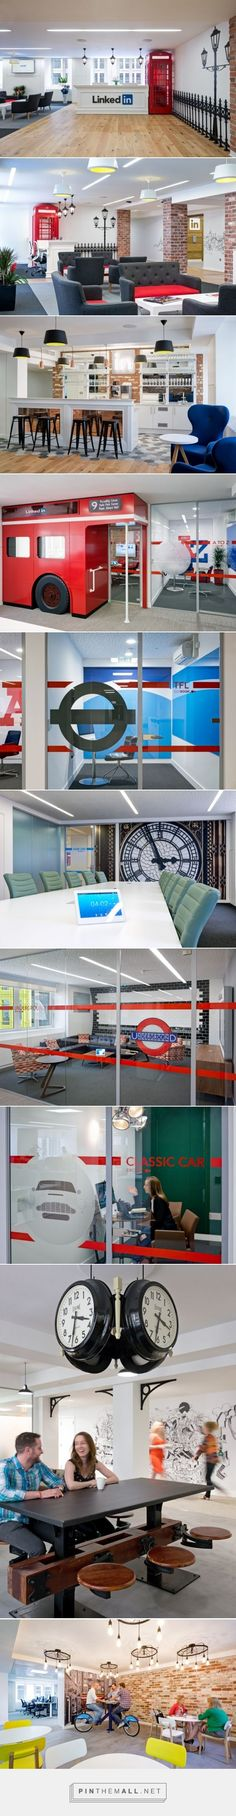 LinkedIn Office by Denton Associates, London – UK »  Retail Design Blog http://retaildesignblog.net/2015/08/18/linkedin-office-by-denton-associates-london-uk/ - created via https://pinthemall.net